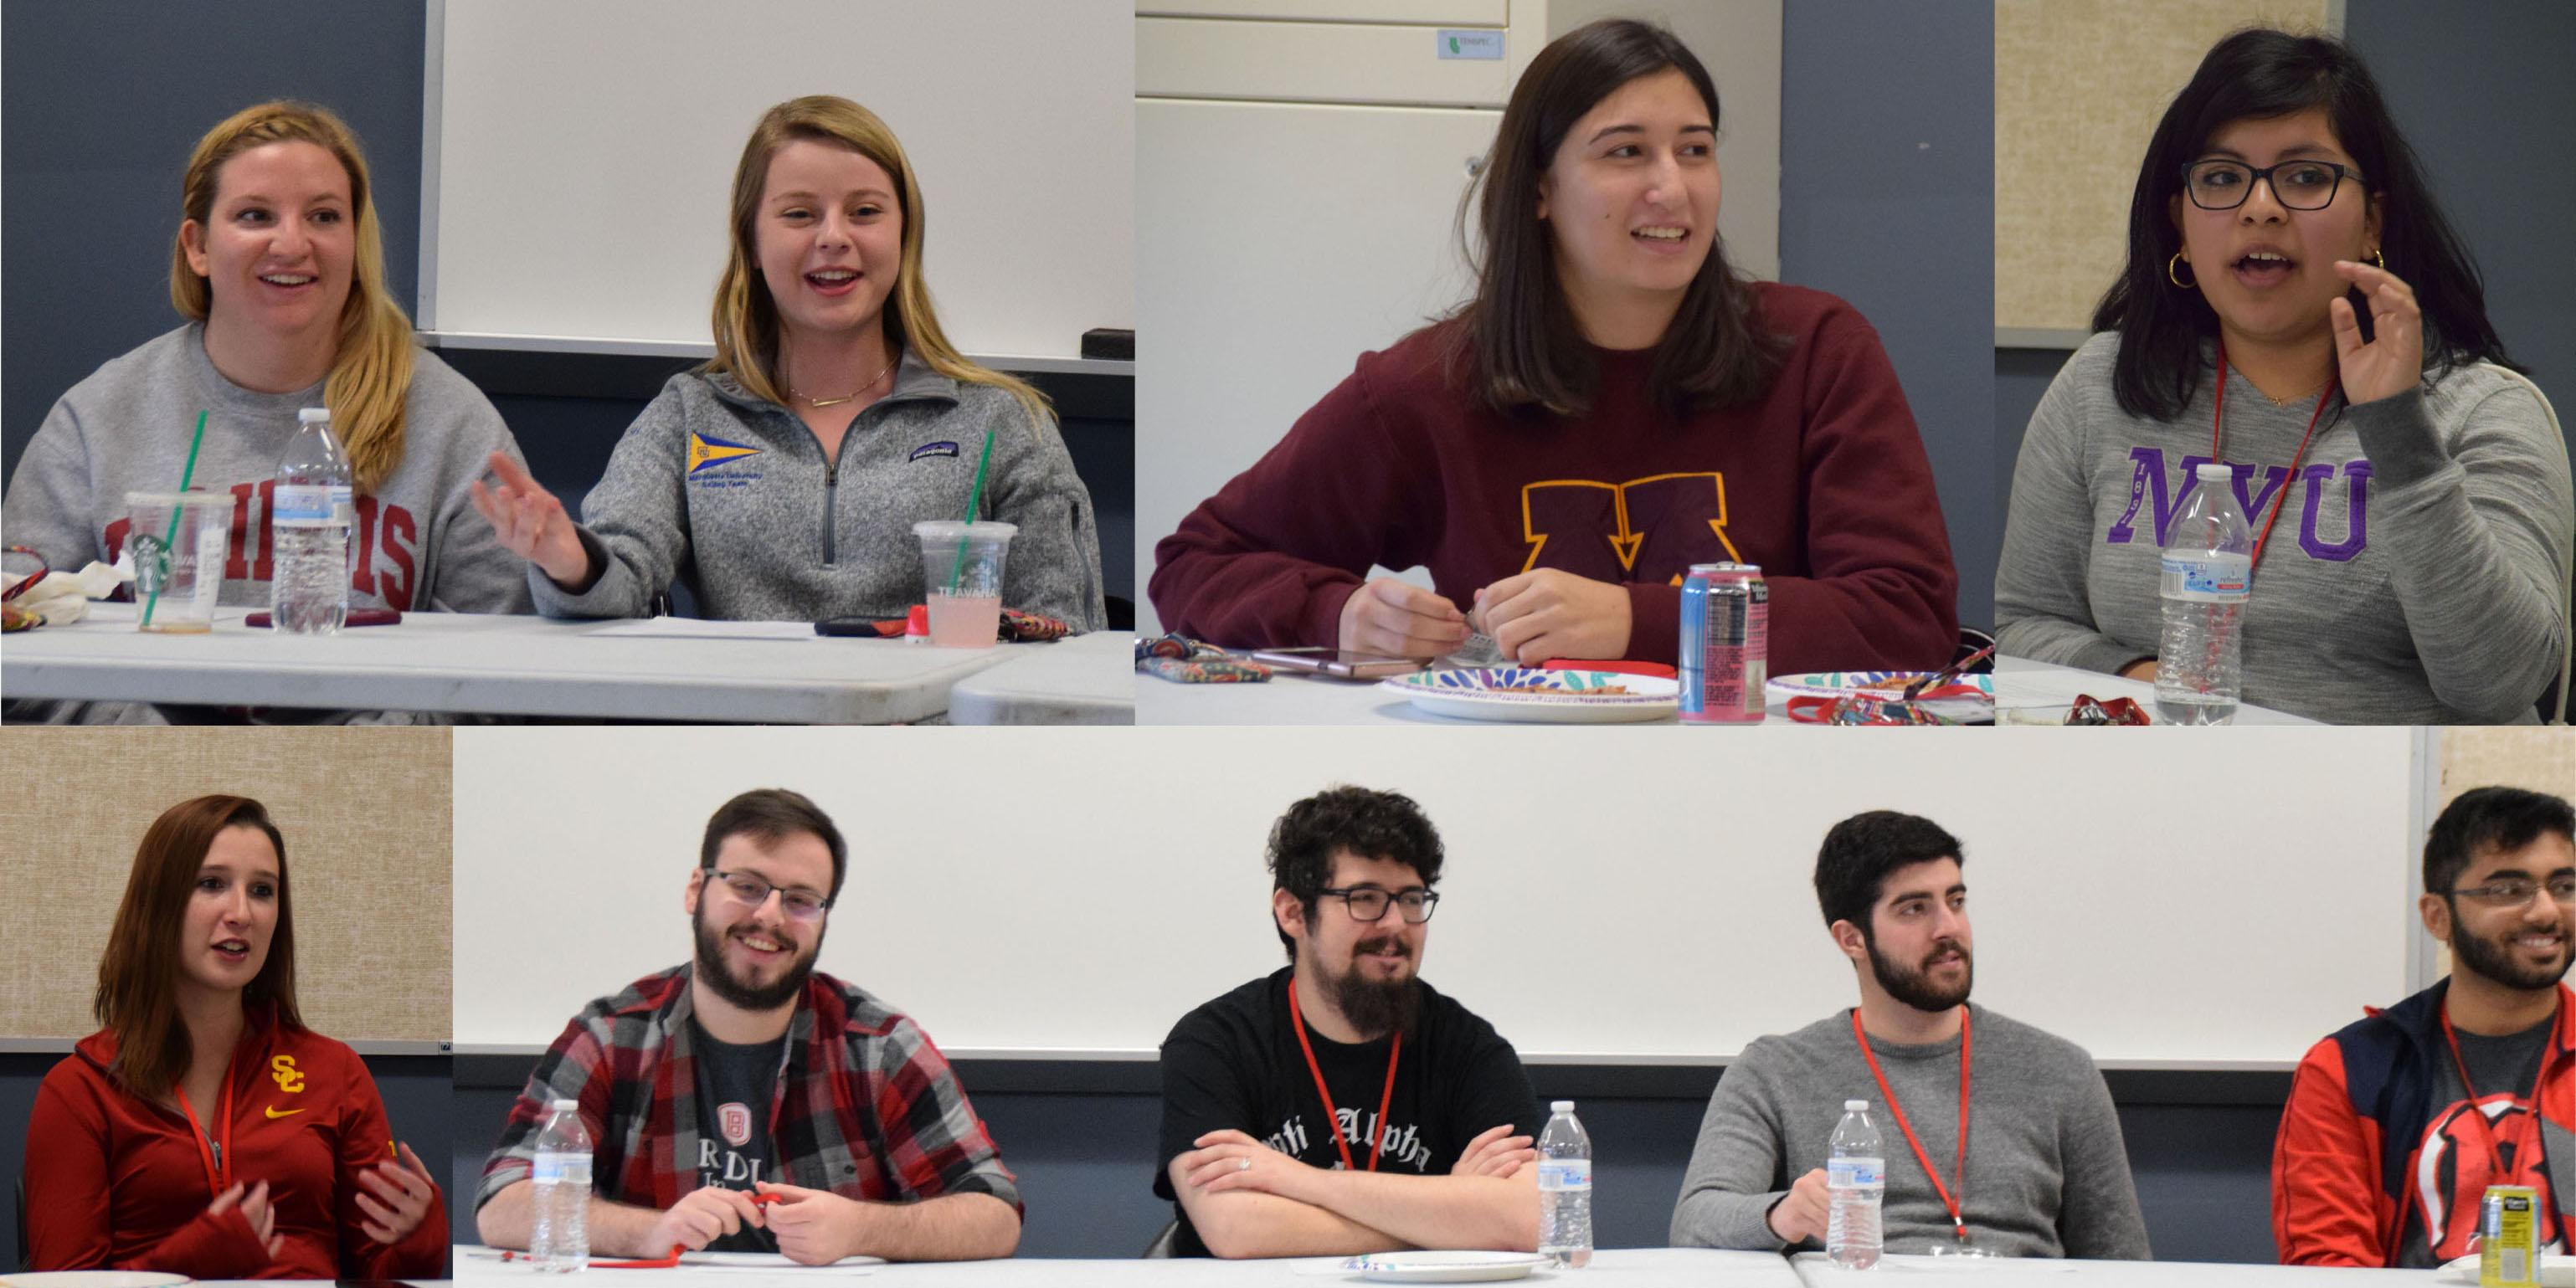 Willowbrook alumni speak with students about dual-credit and Advanced Placement (AP)/college-level courses